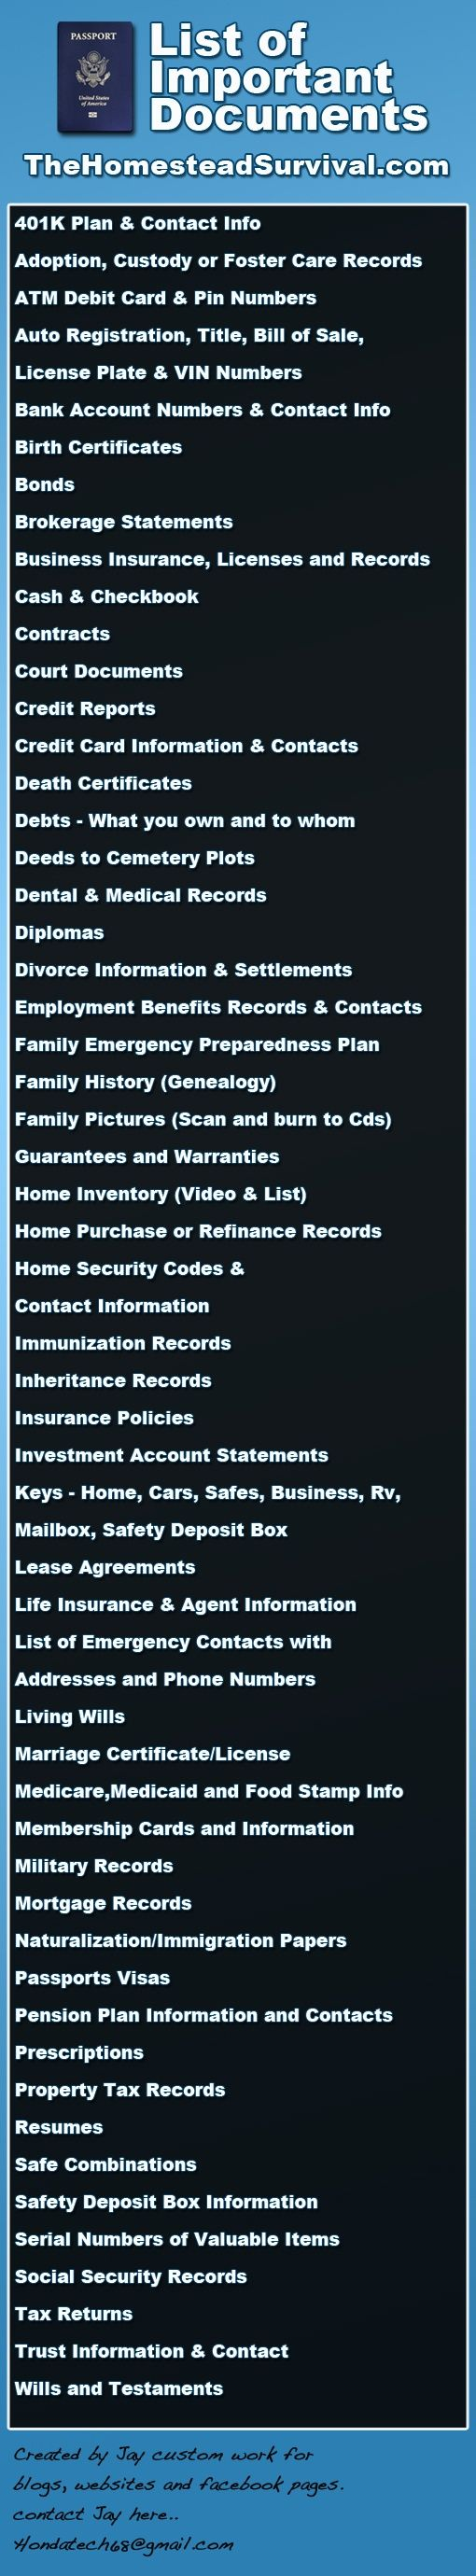 List Of Important Documents » The Homestead Survival